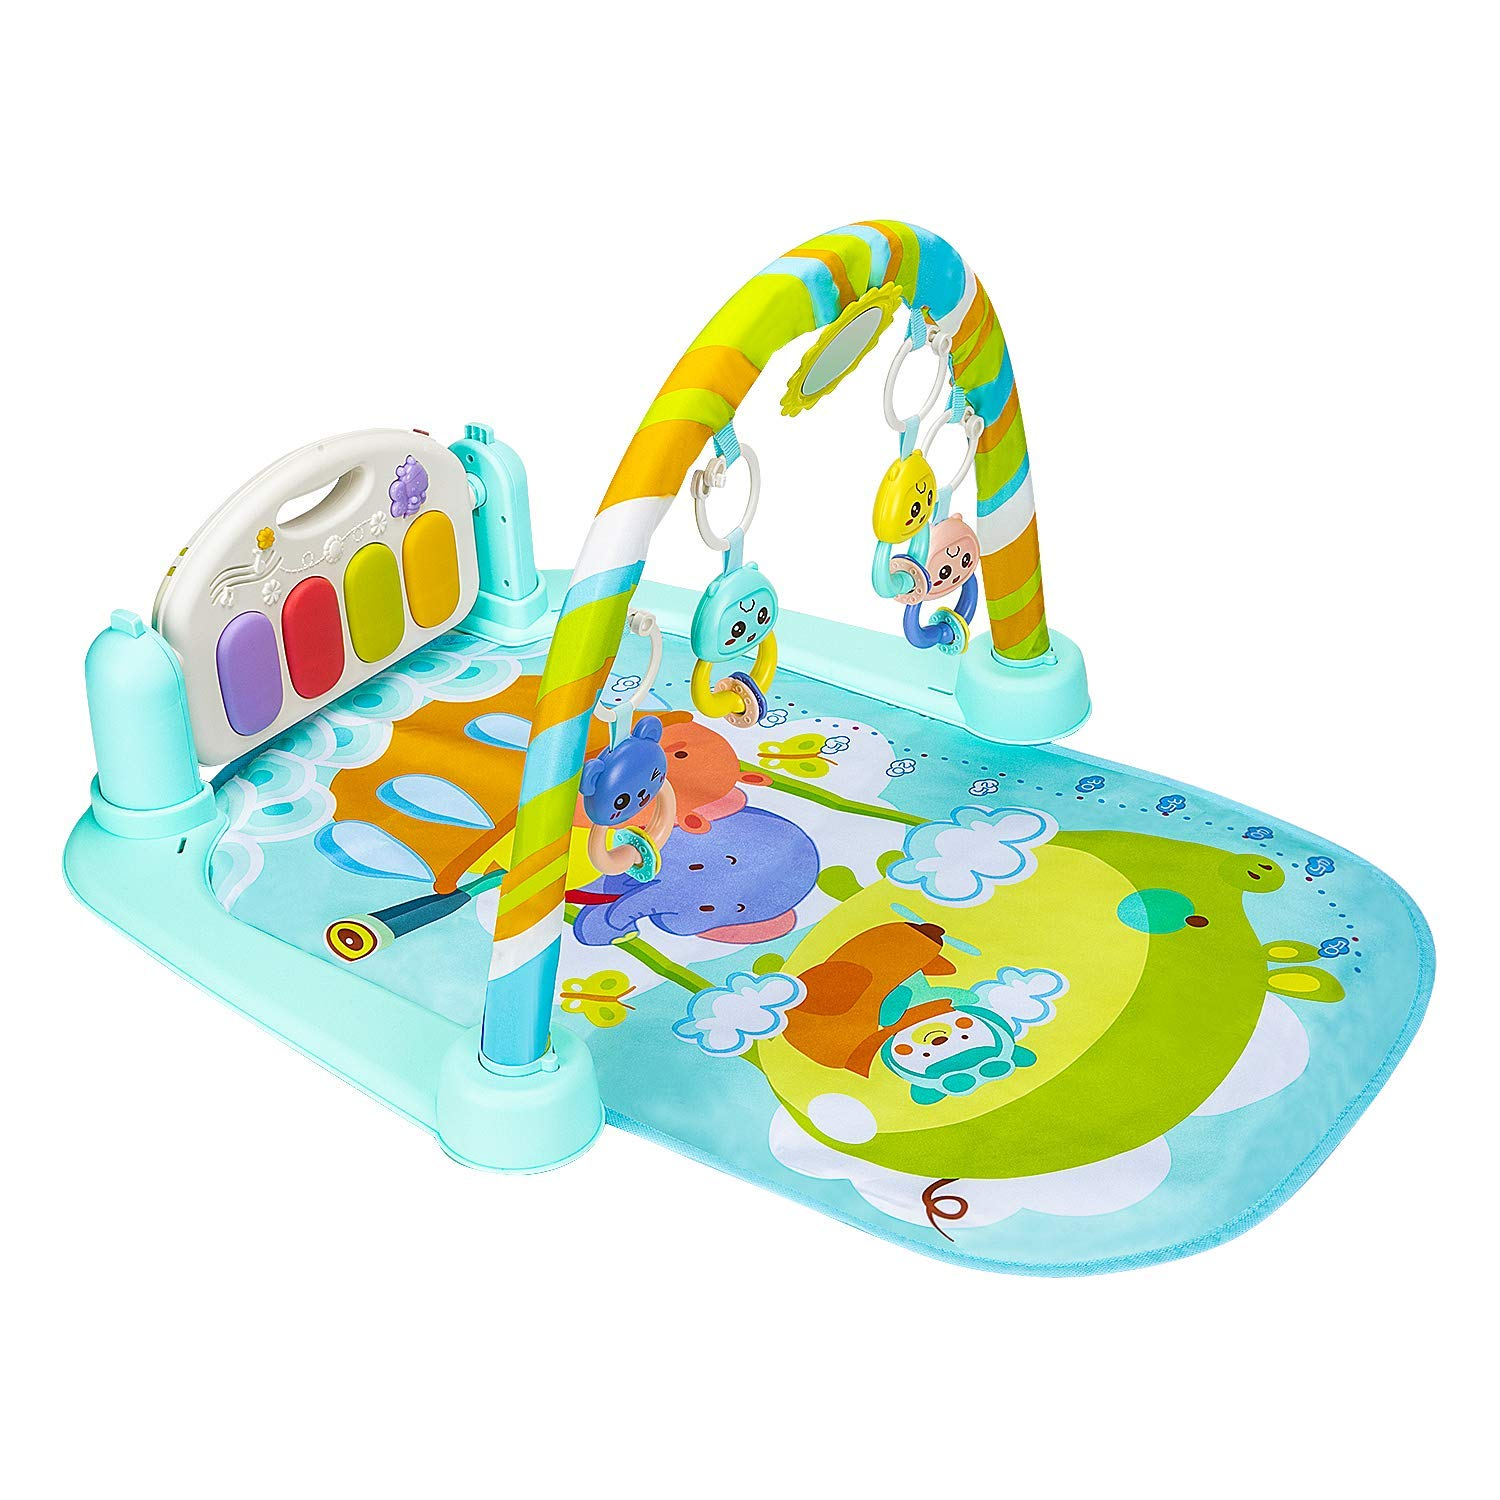 Christoy Baby Play Gym Kick and Play Mat Newborn Activity Gym Lay Play 3 in 1 Fitness Music and Lights Fun Piano Blue